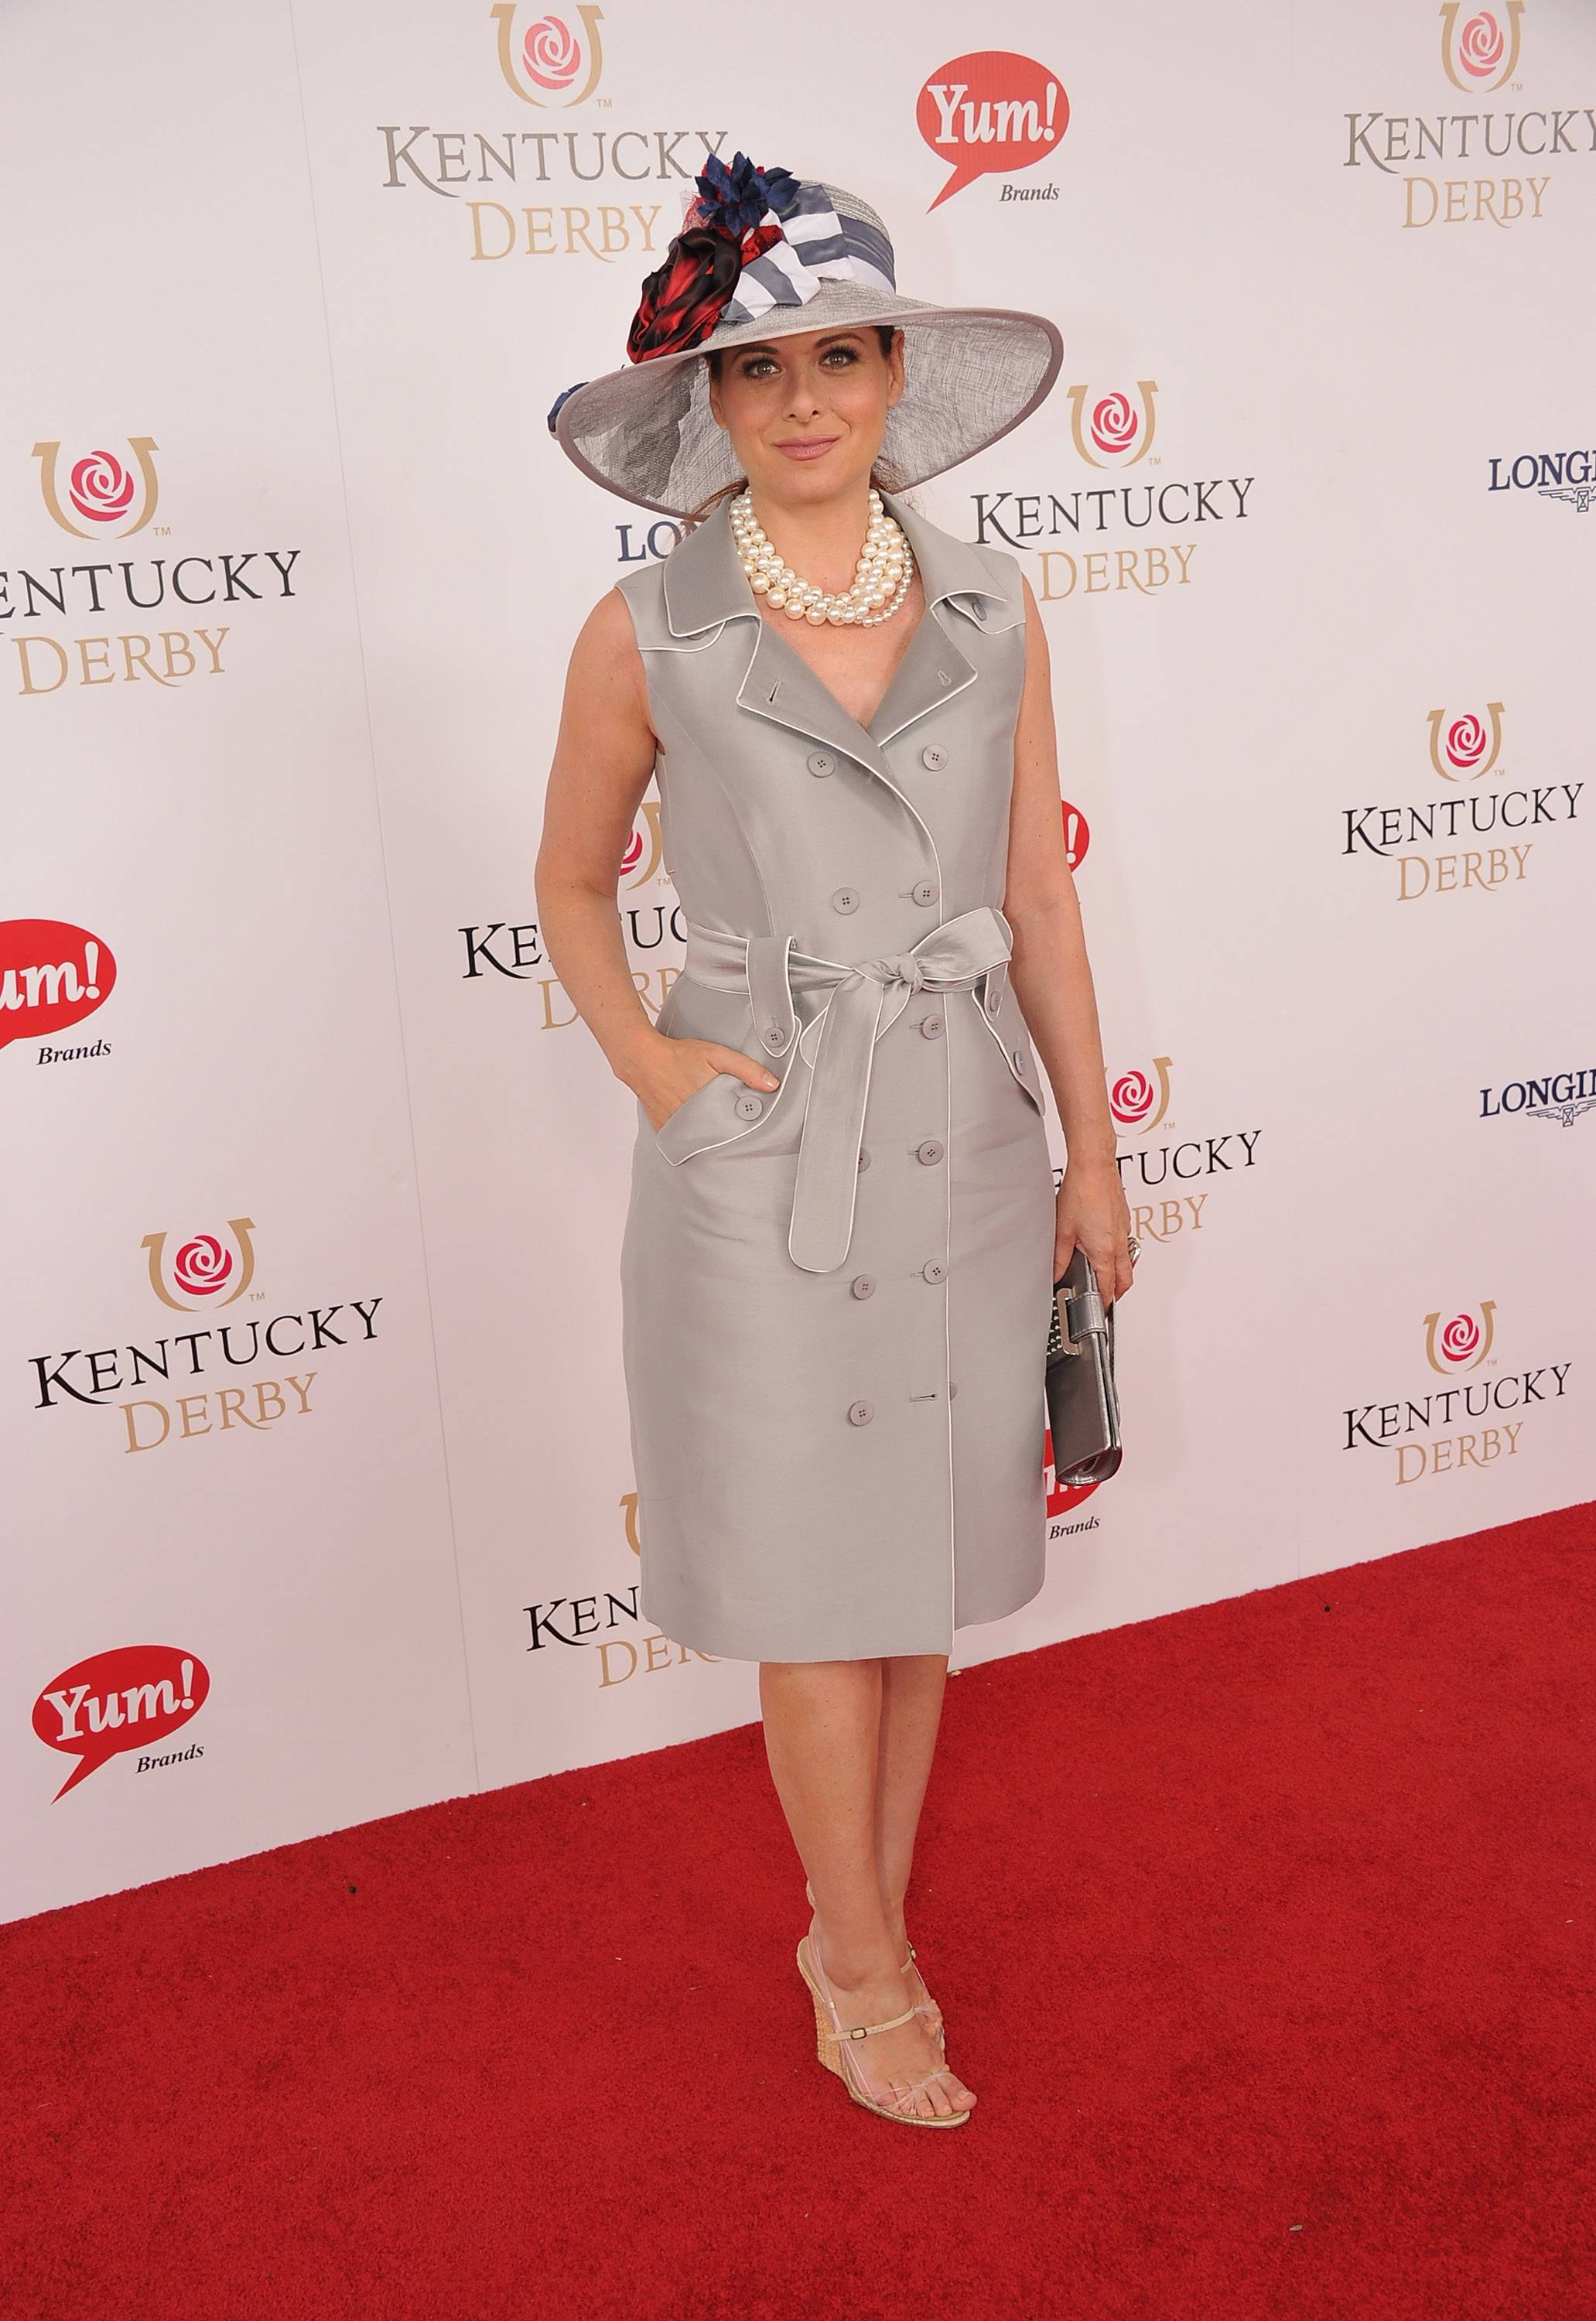 Debra Messing wears GREY GOOSE Cherry Noir Vodka Inspired Hat at the 2012 Kentucky Derby7